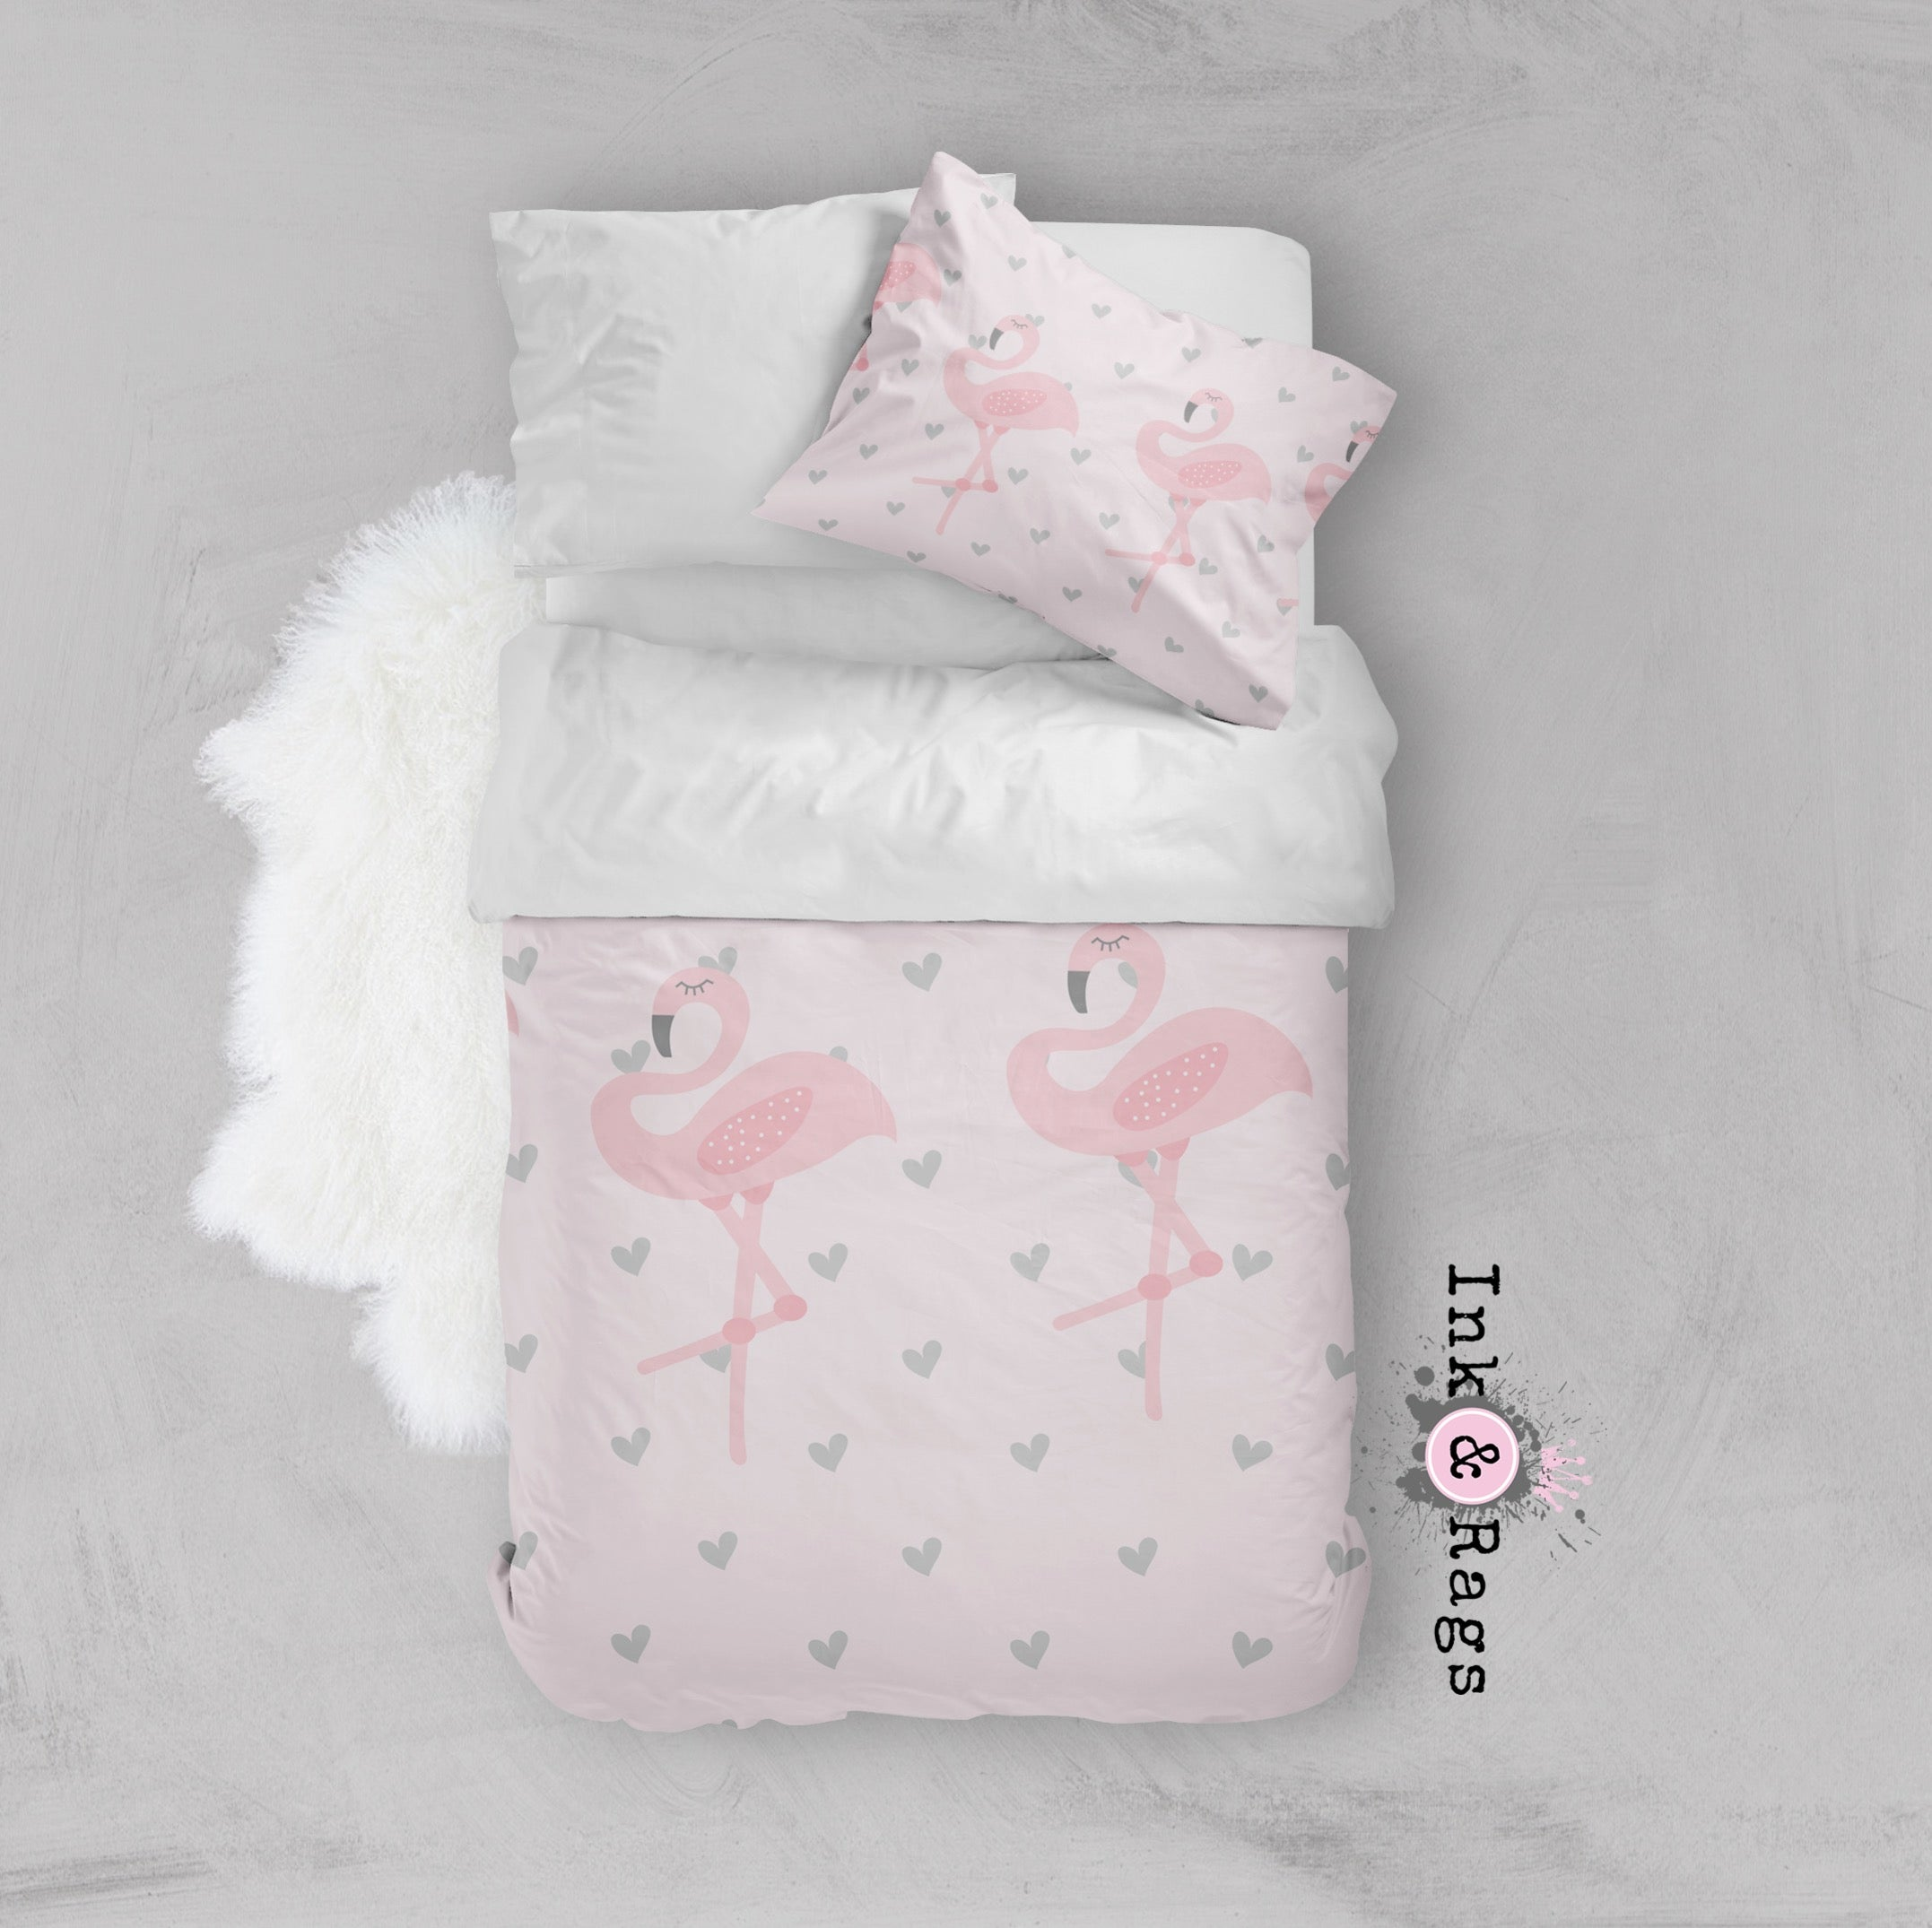 about bedding comforter full collection and bedroom furniture nursery cot white baby size of sets crib girls affordable all cribs grey